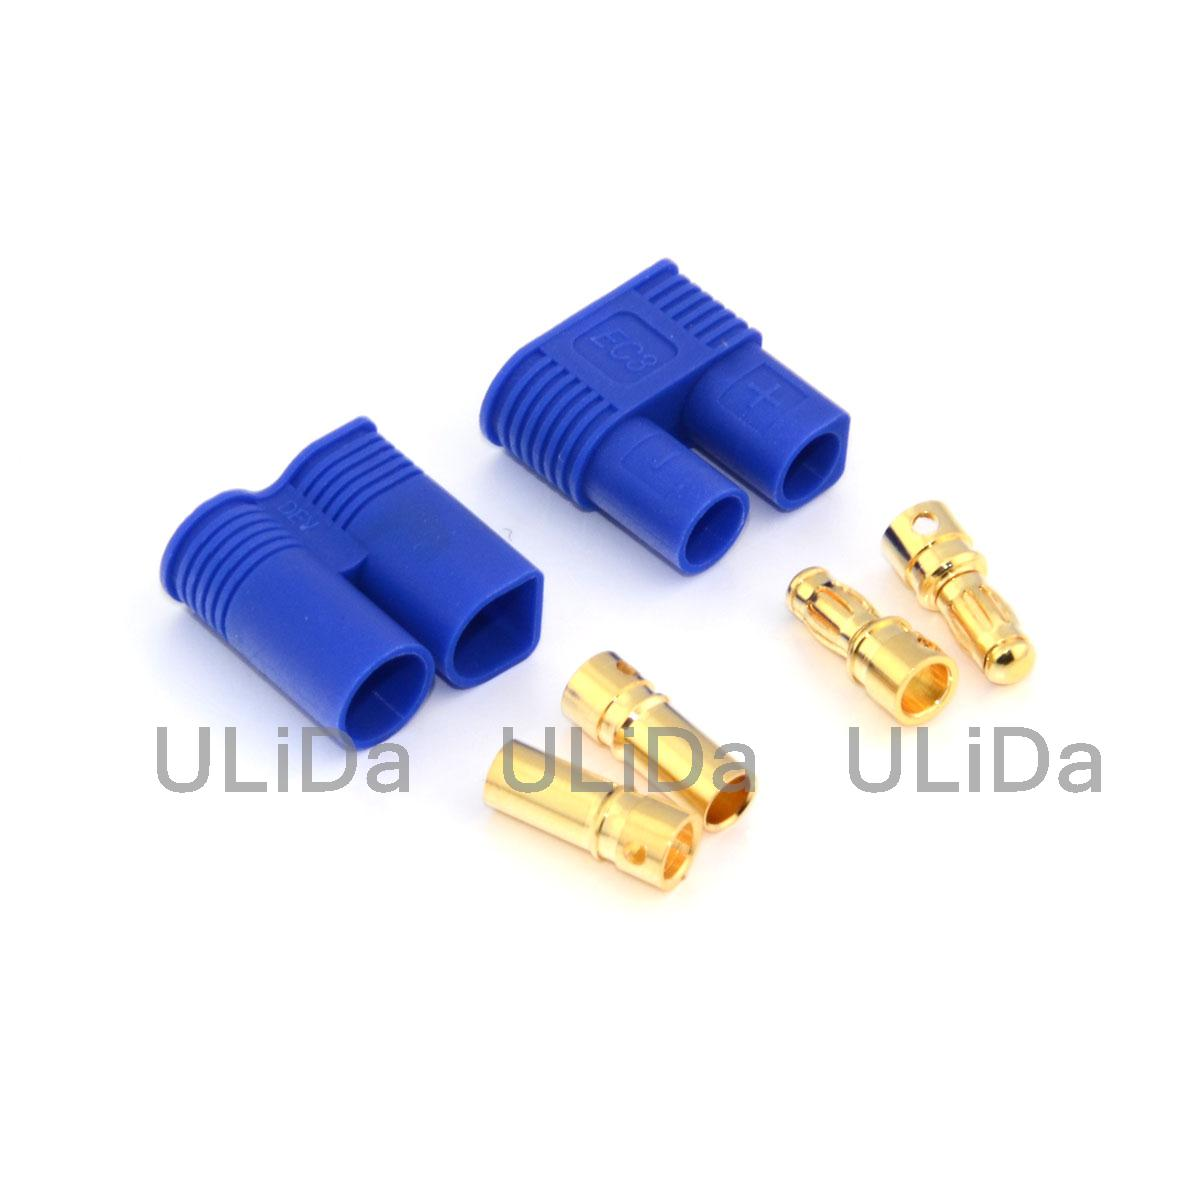 4MM Female Bullet to 6.5MM Male Bullet ESC Extension Leads 10AWG 200C SILICONE